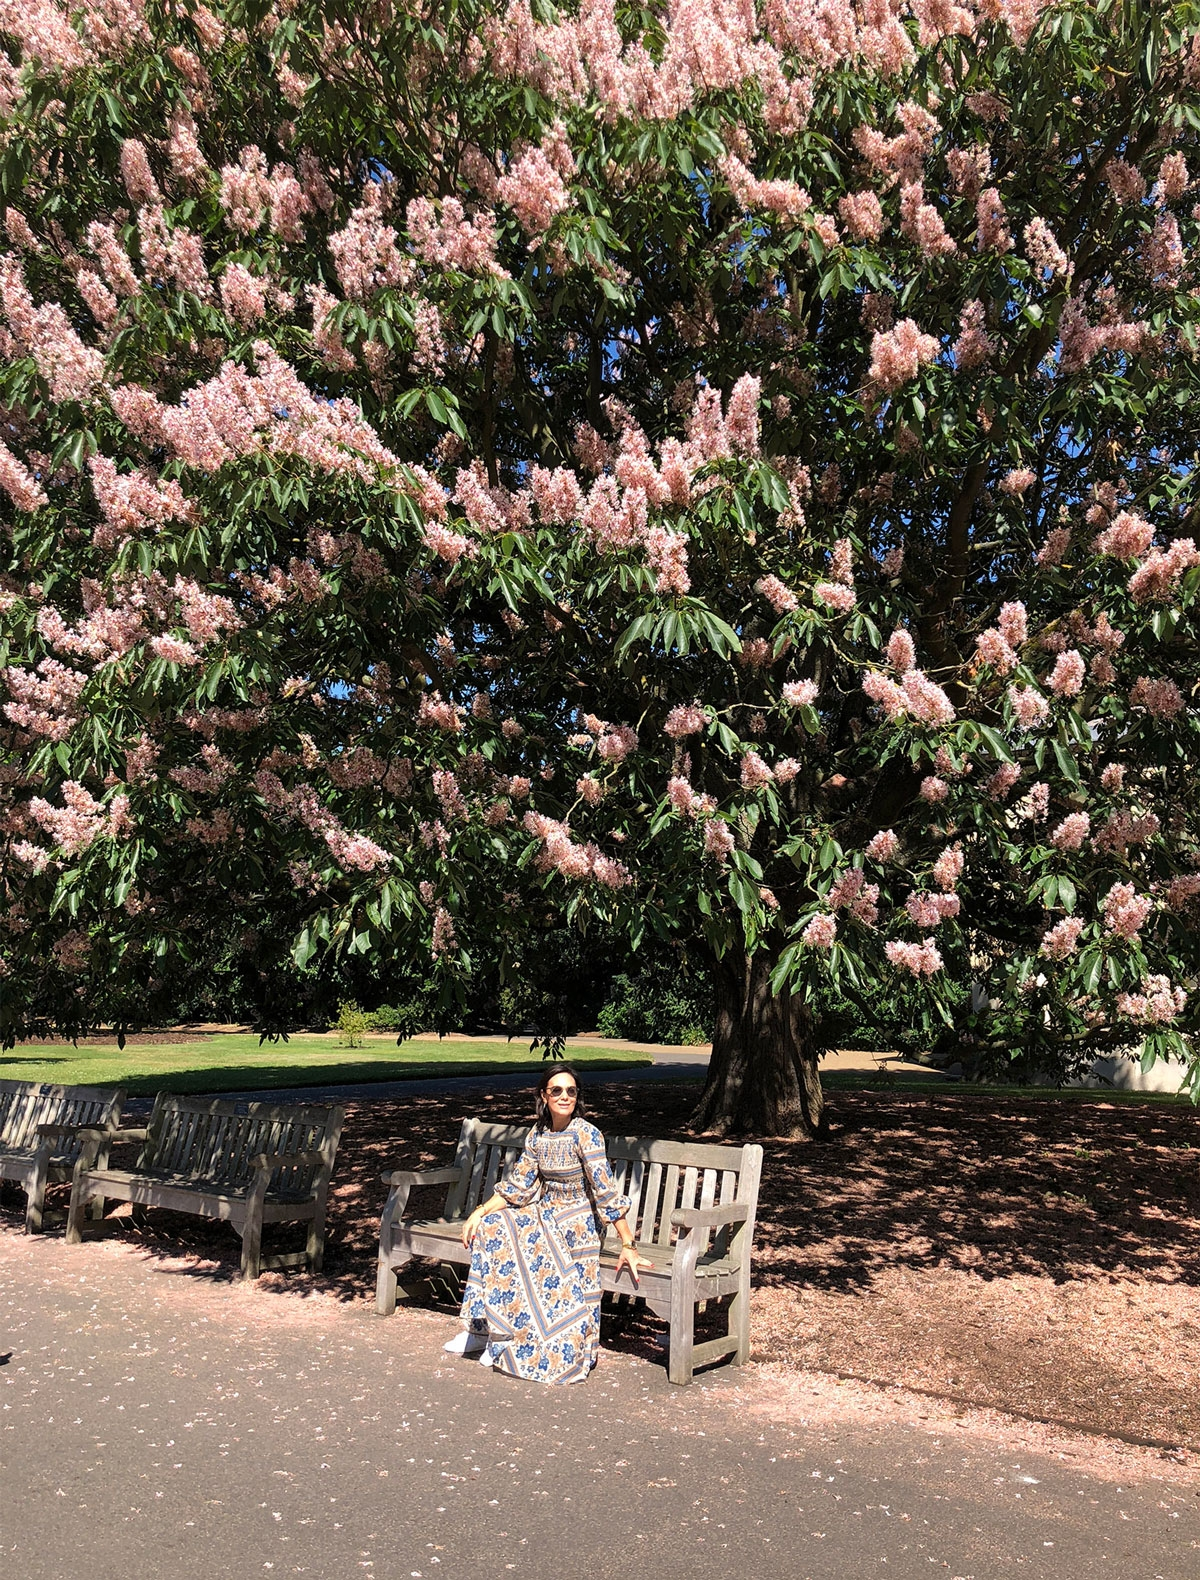 Nicky Zimmermann sitting on a bench under a large flowering tree in Kew Gardens